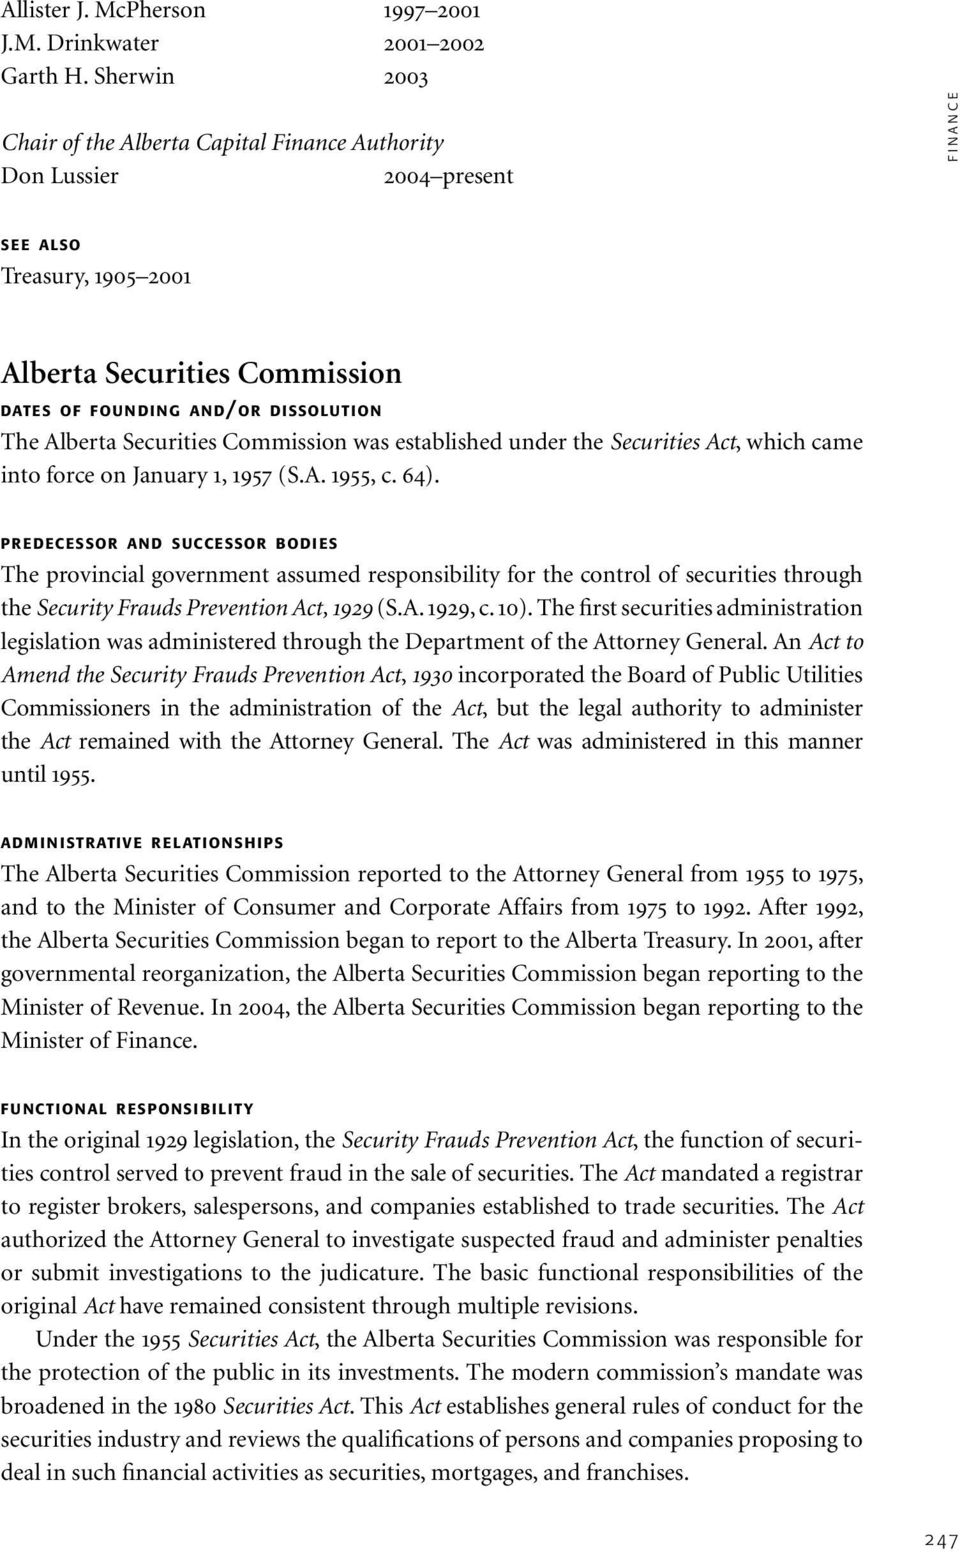 The Alberta Securities Commission was established under the Securities Act, which came into force on January 1, 1957 (S.A. 1955, c. 64).